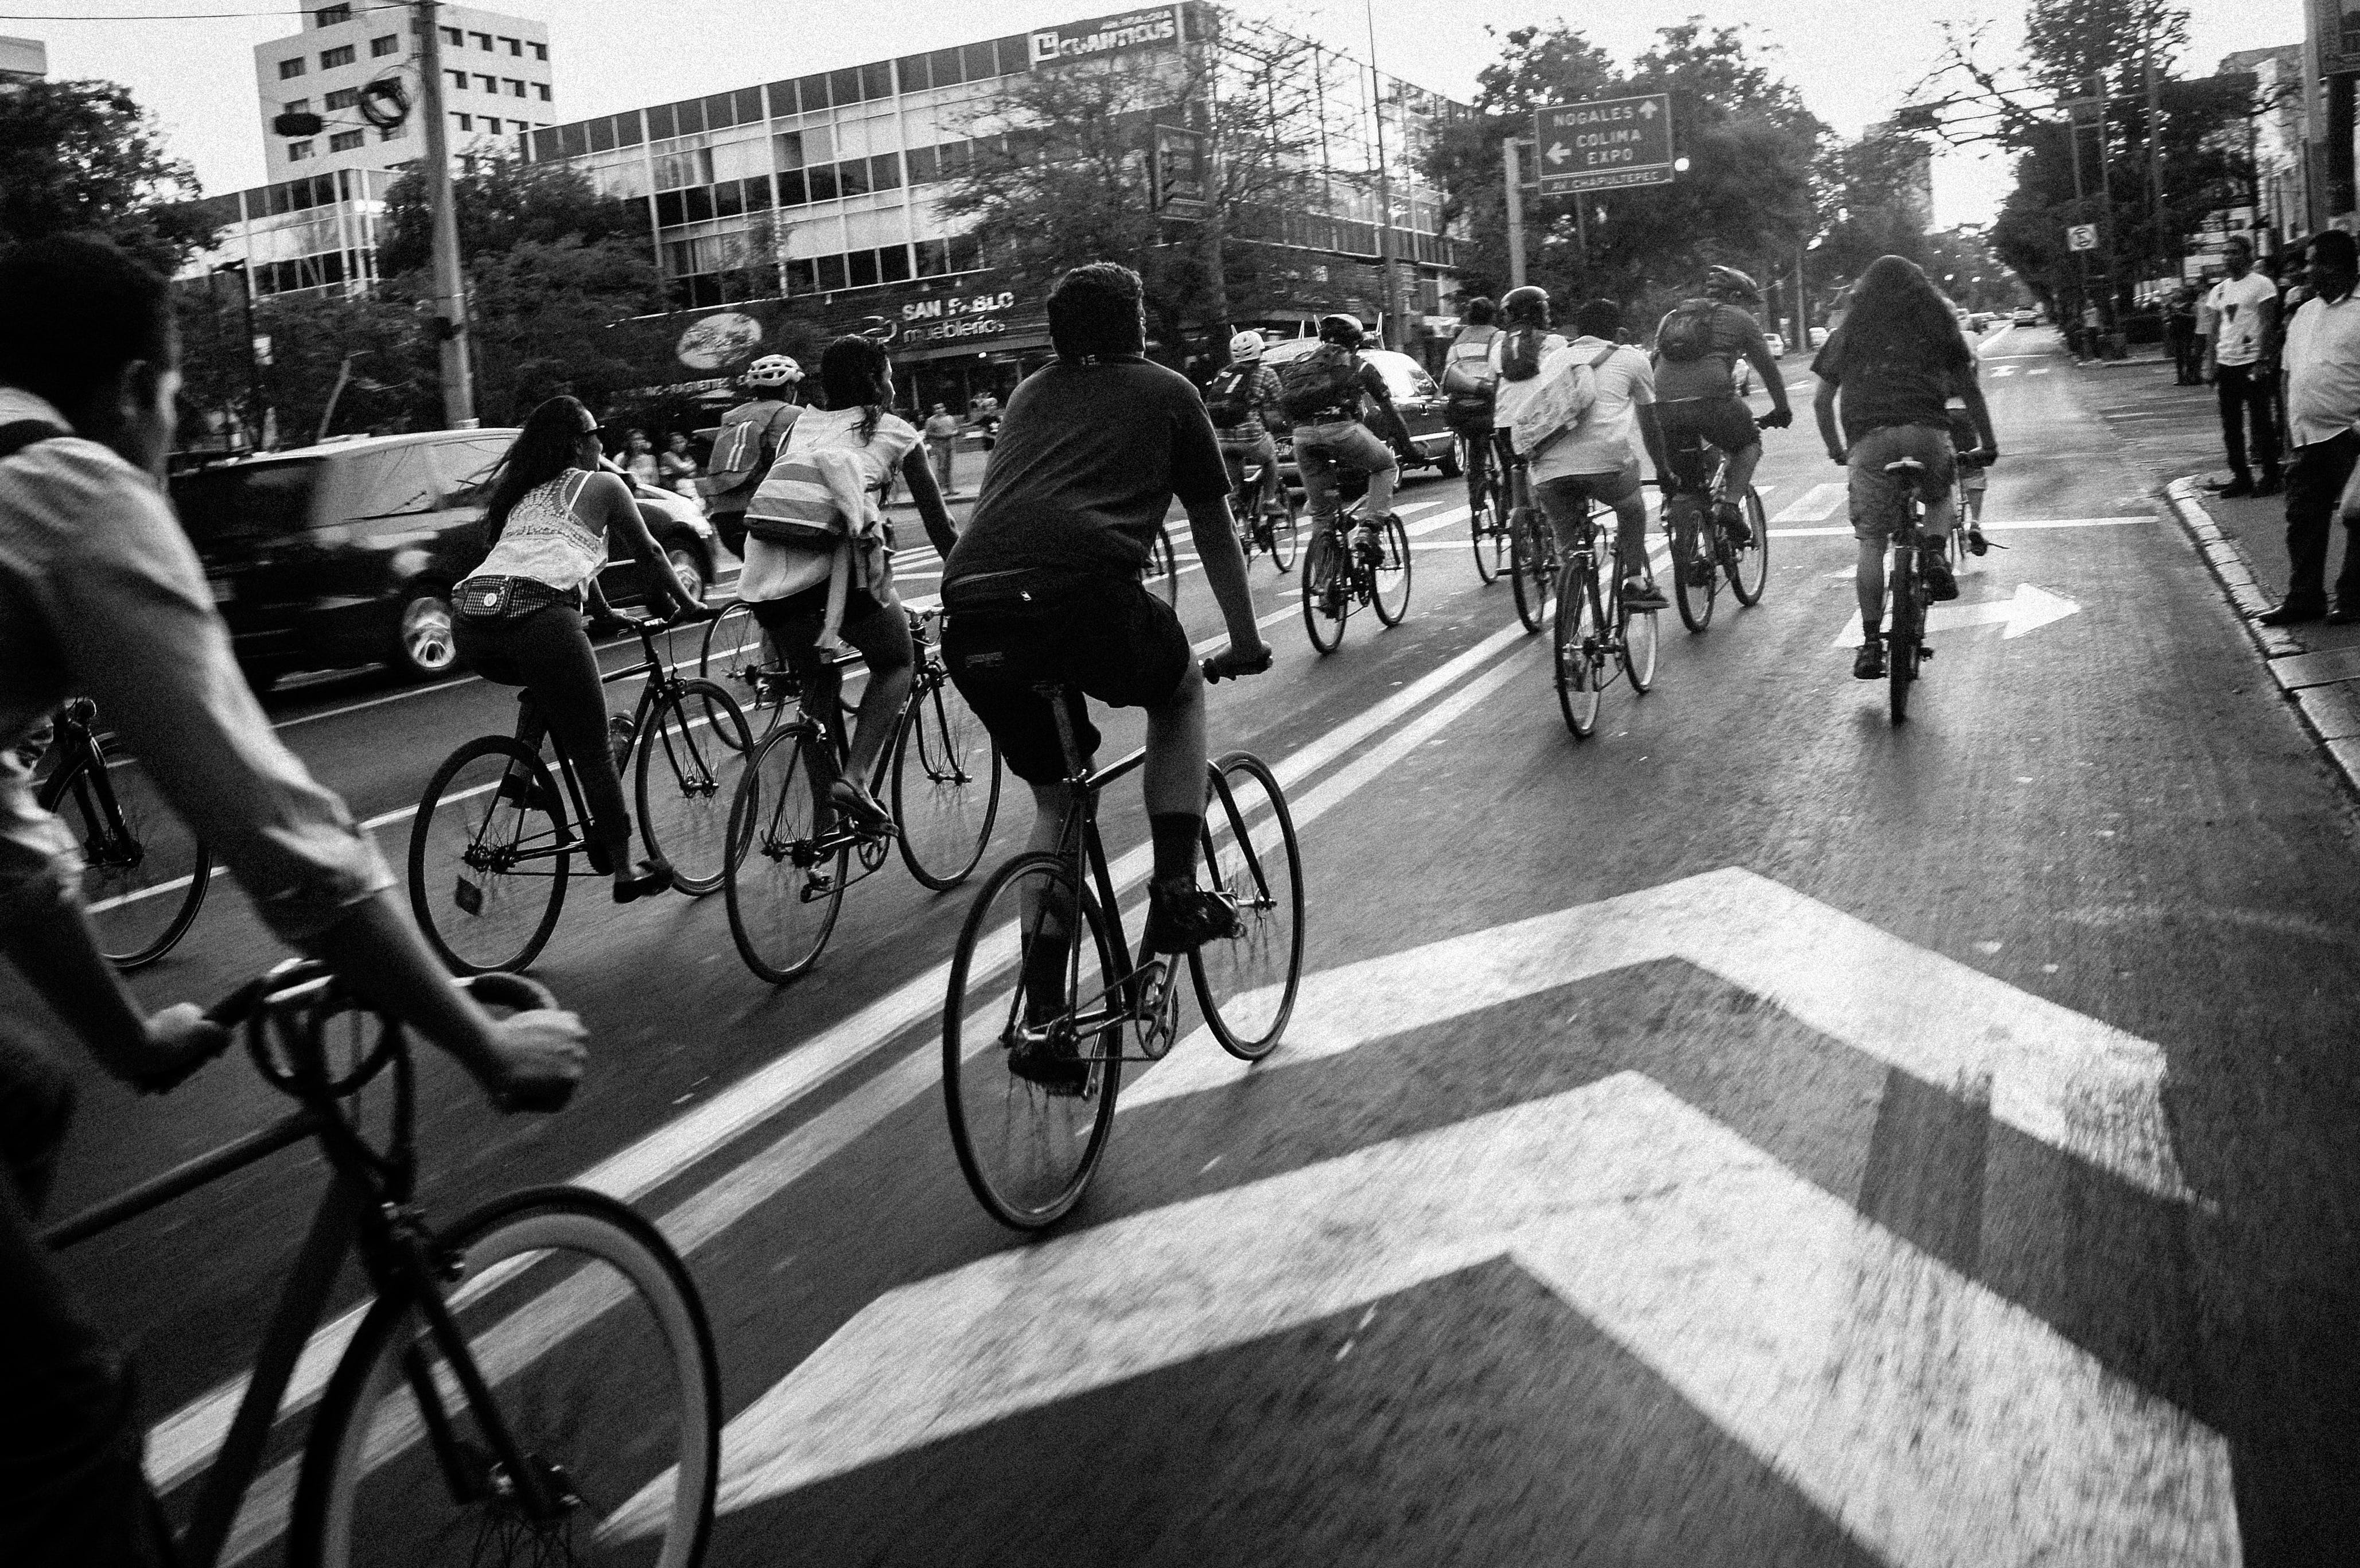 People Riding Bicycles on Street